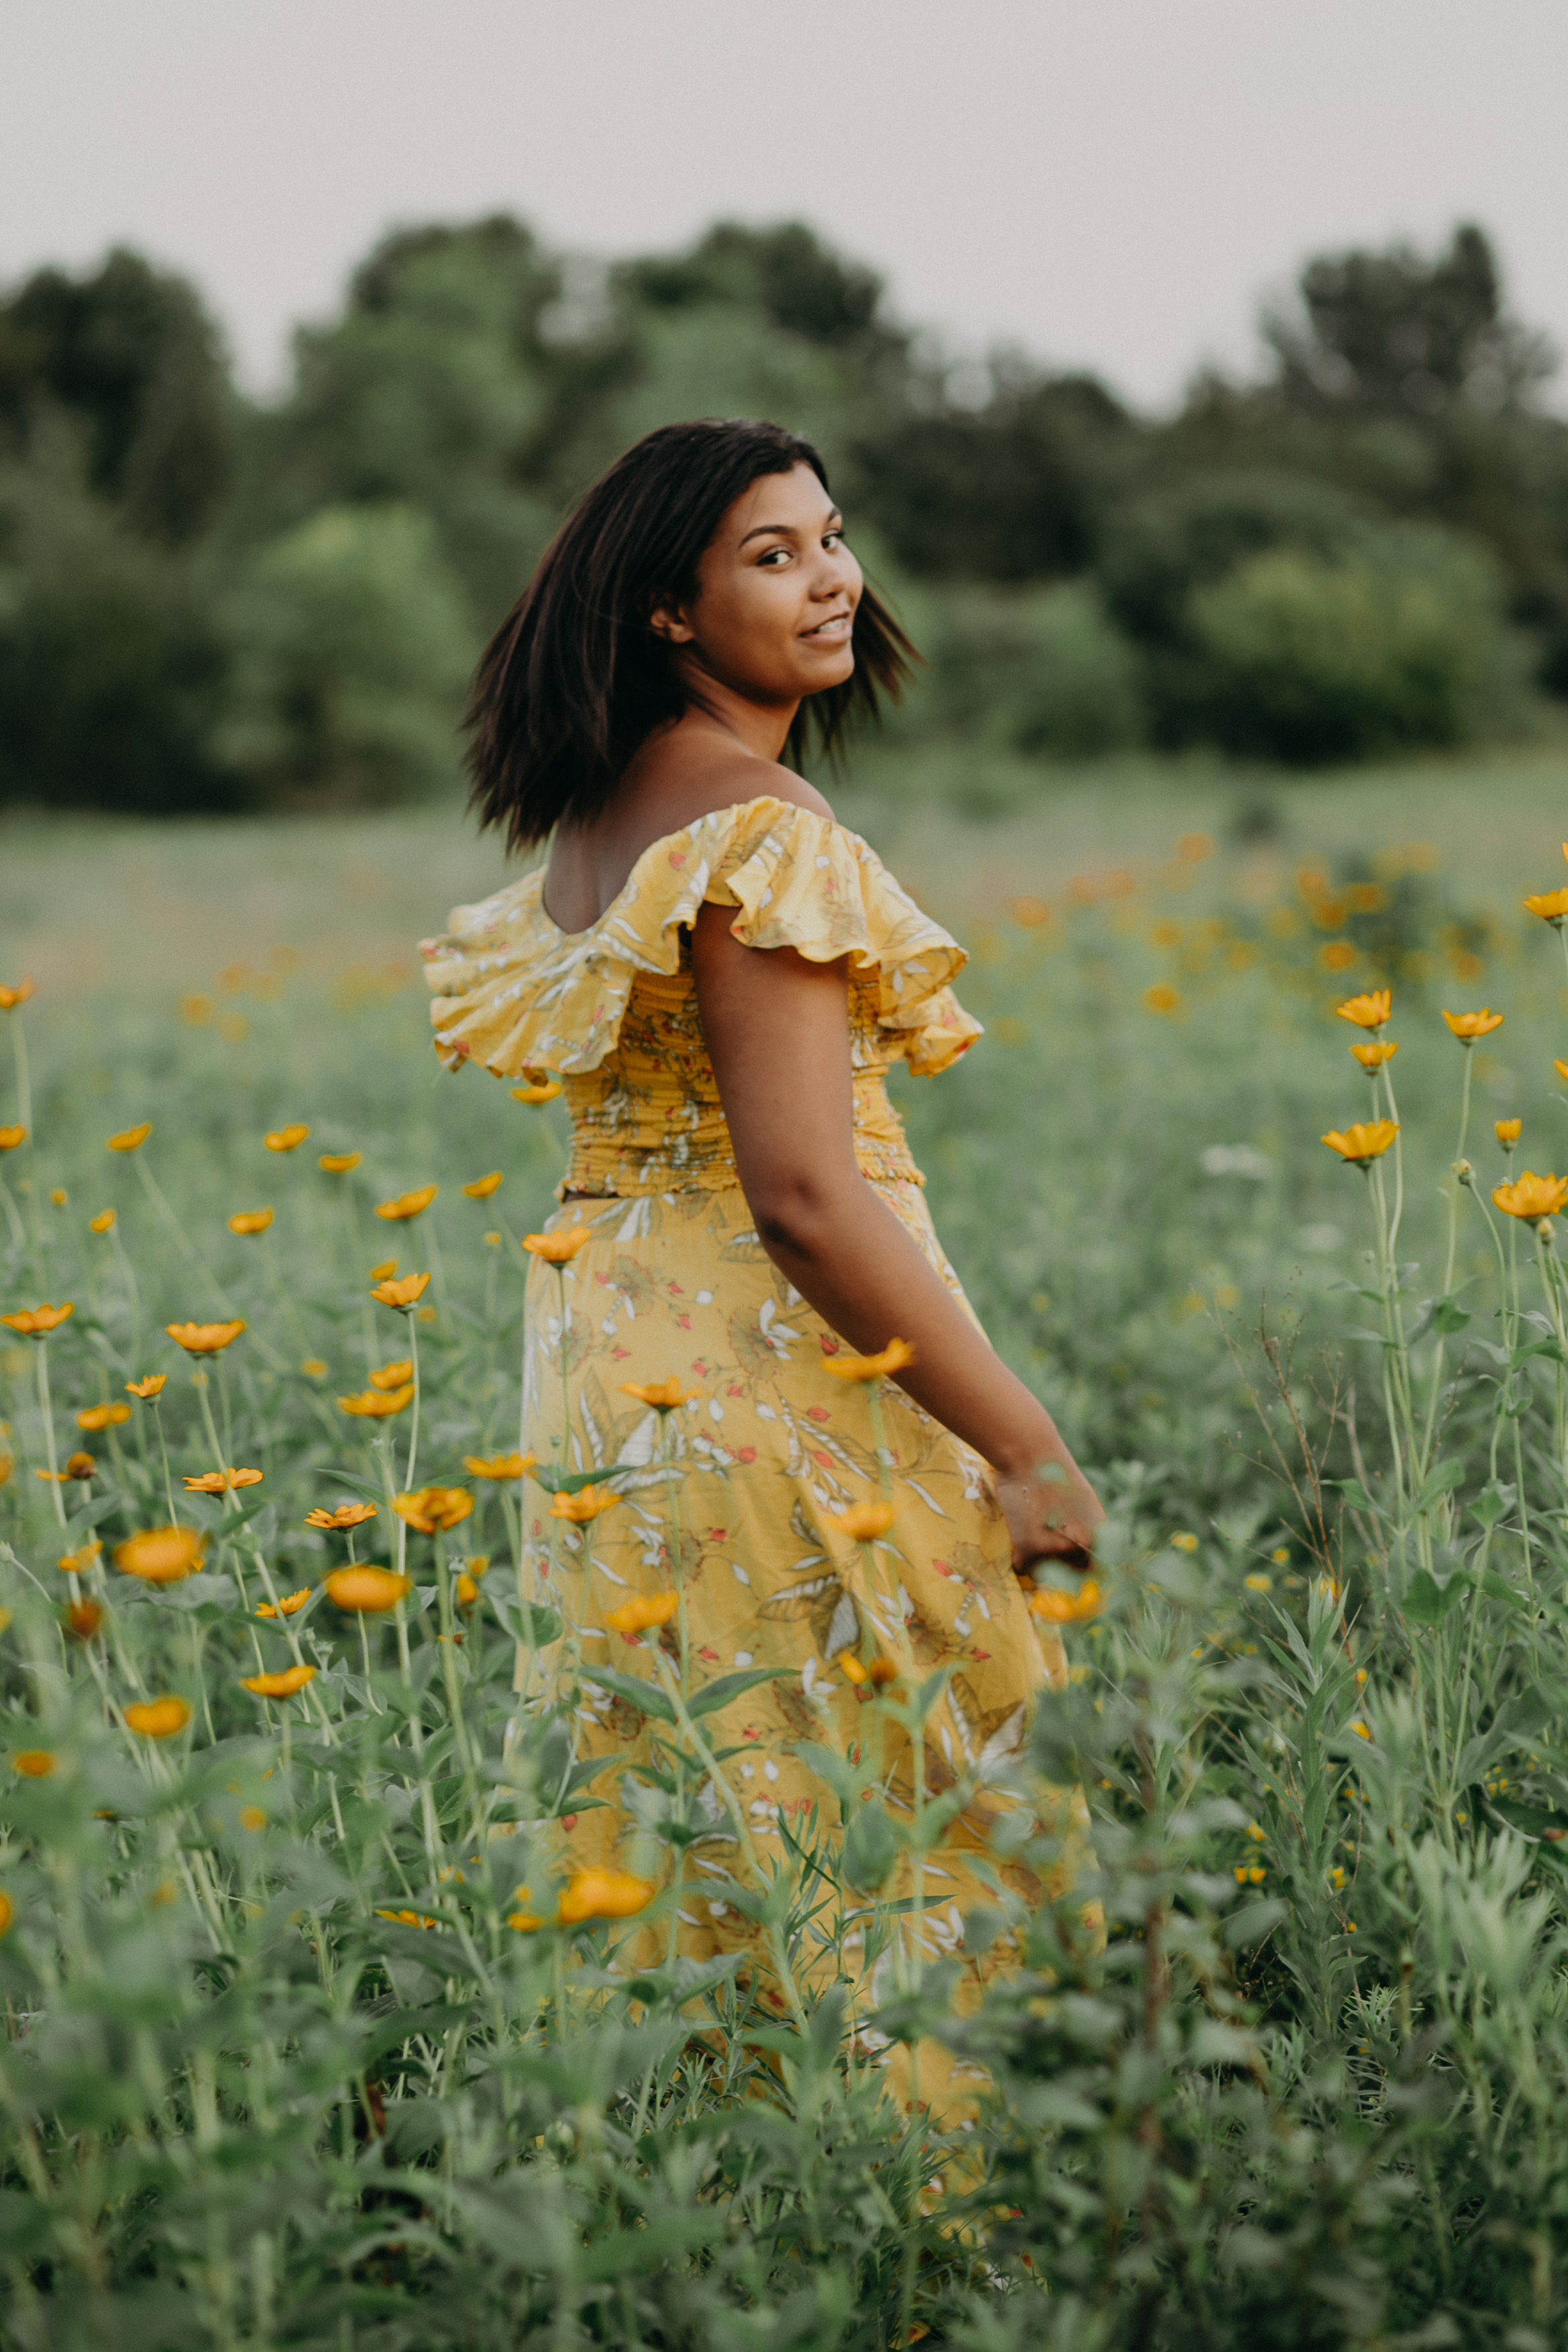 black high school senior from Bloomington MN twirling in a yellow dress in a flower field